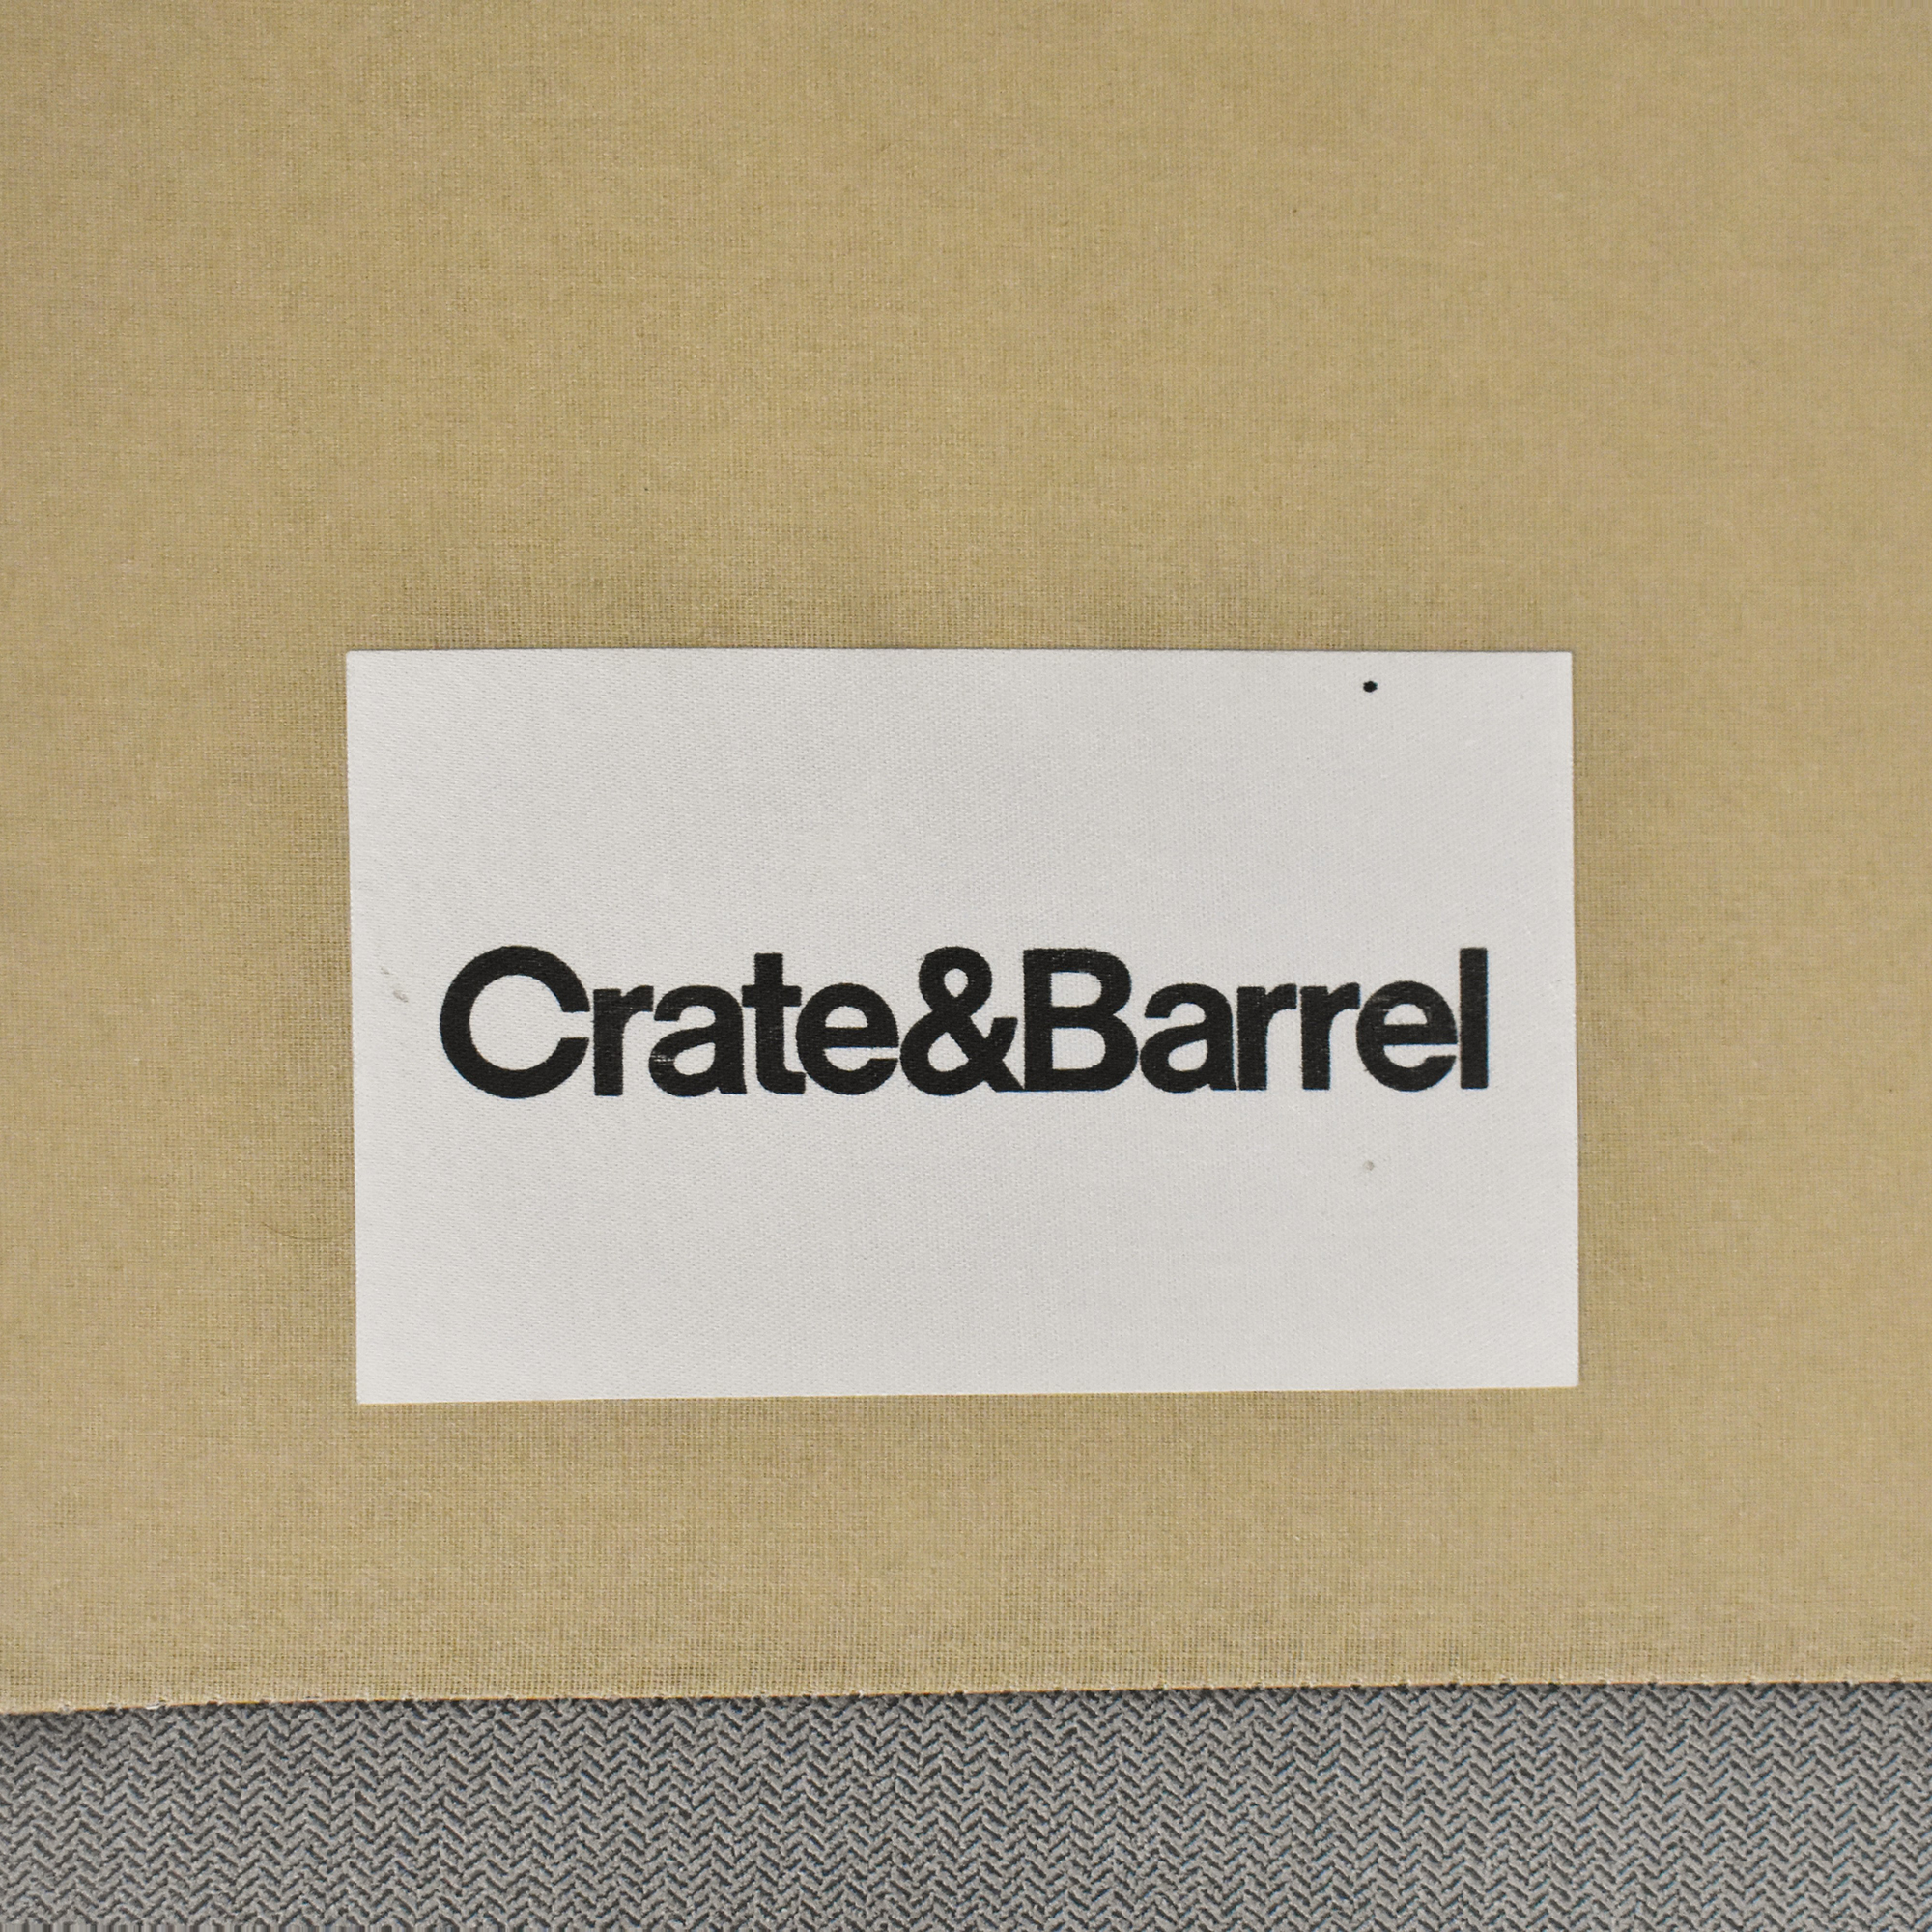 Crate & Barrel Crate & Barrel Axis II Chaise Sectional Sofa for sale